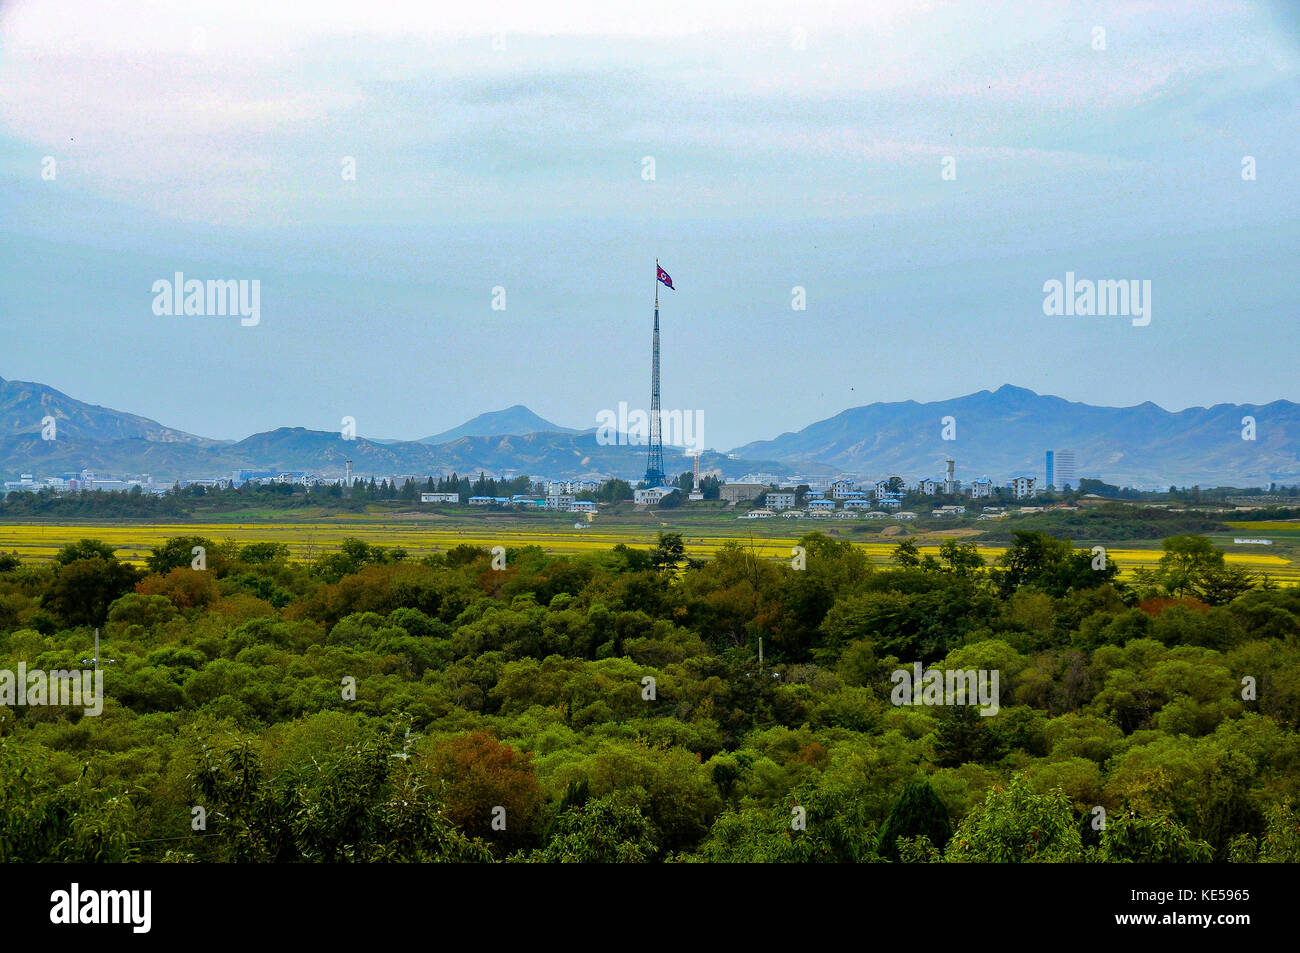 KOREA,JOINT SECURITY AEREA - September 26, 2014: View to Kijsong-dong. Is a village in North Korea. North Korea - Stock Image